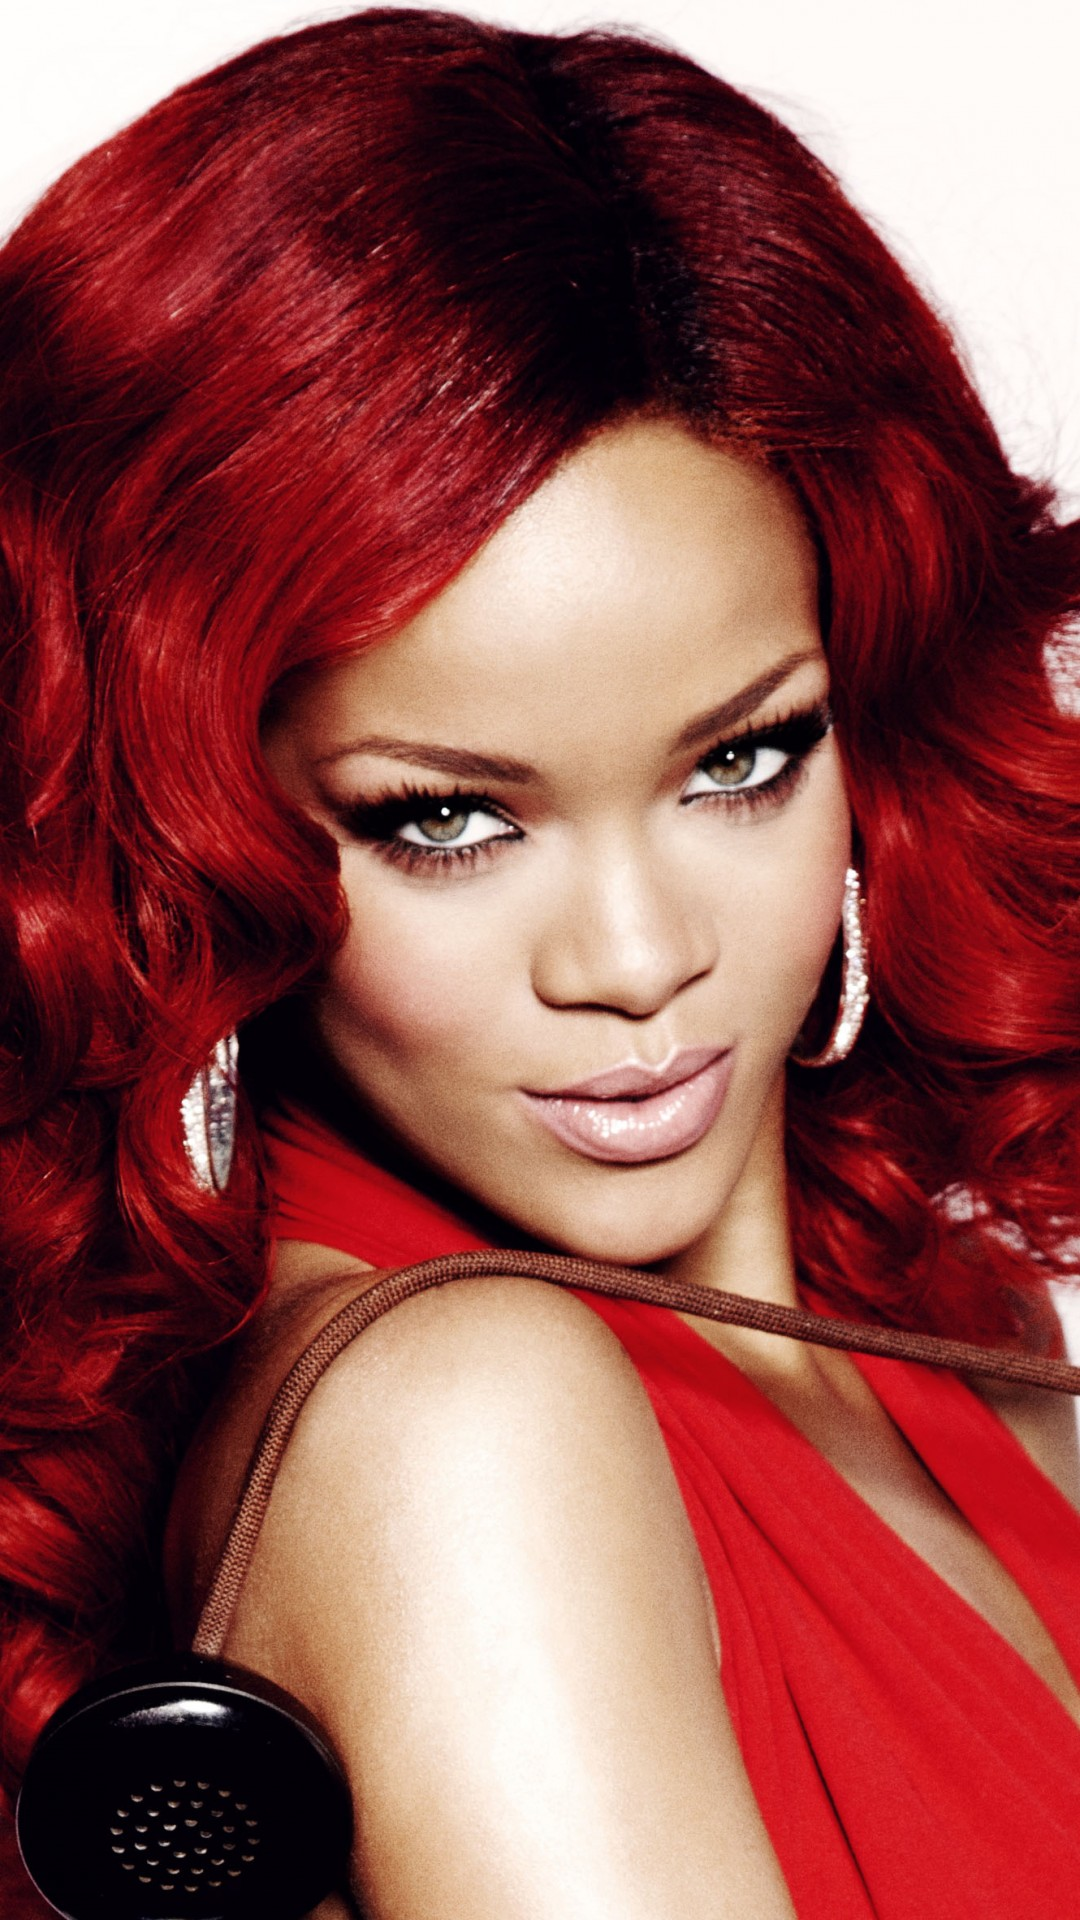 Most Popular Teen Girl Hairstyles: Wallpaper Rihanna, Most Popular Celebs In 2015, Singer